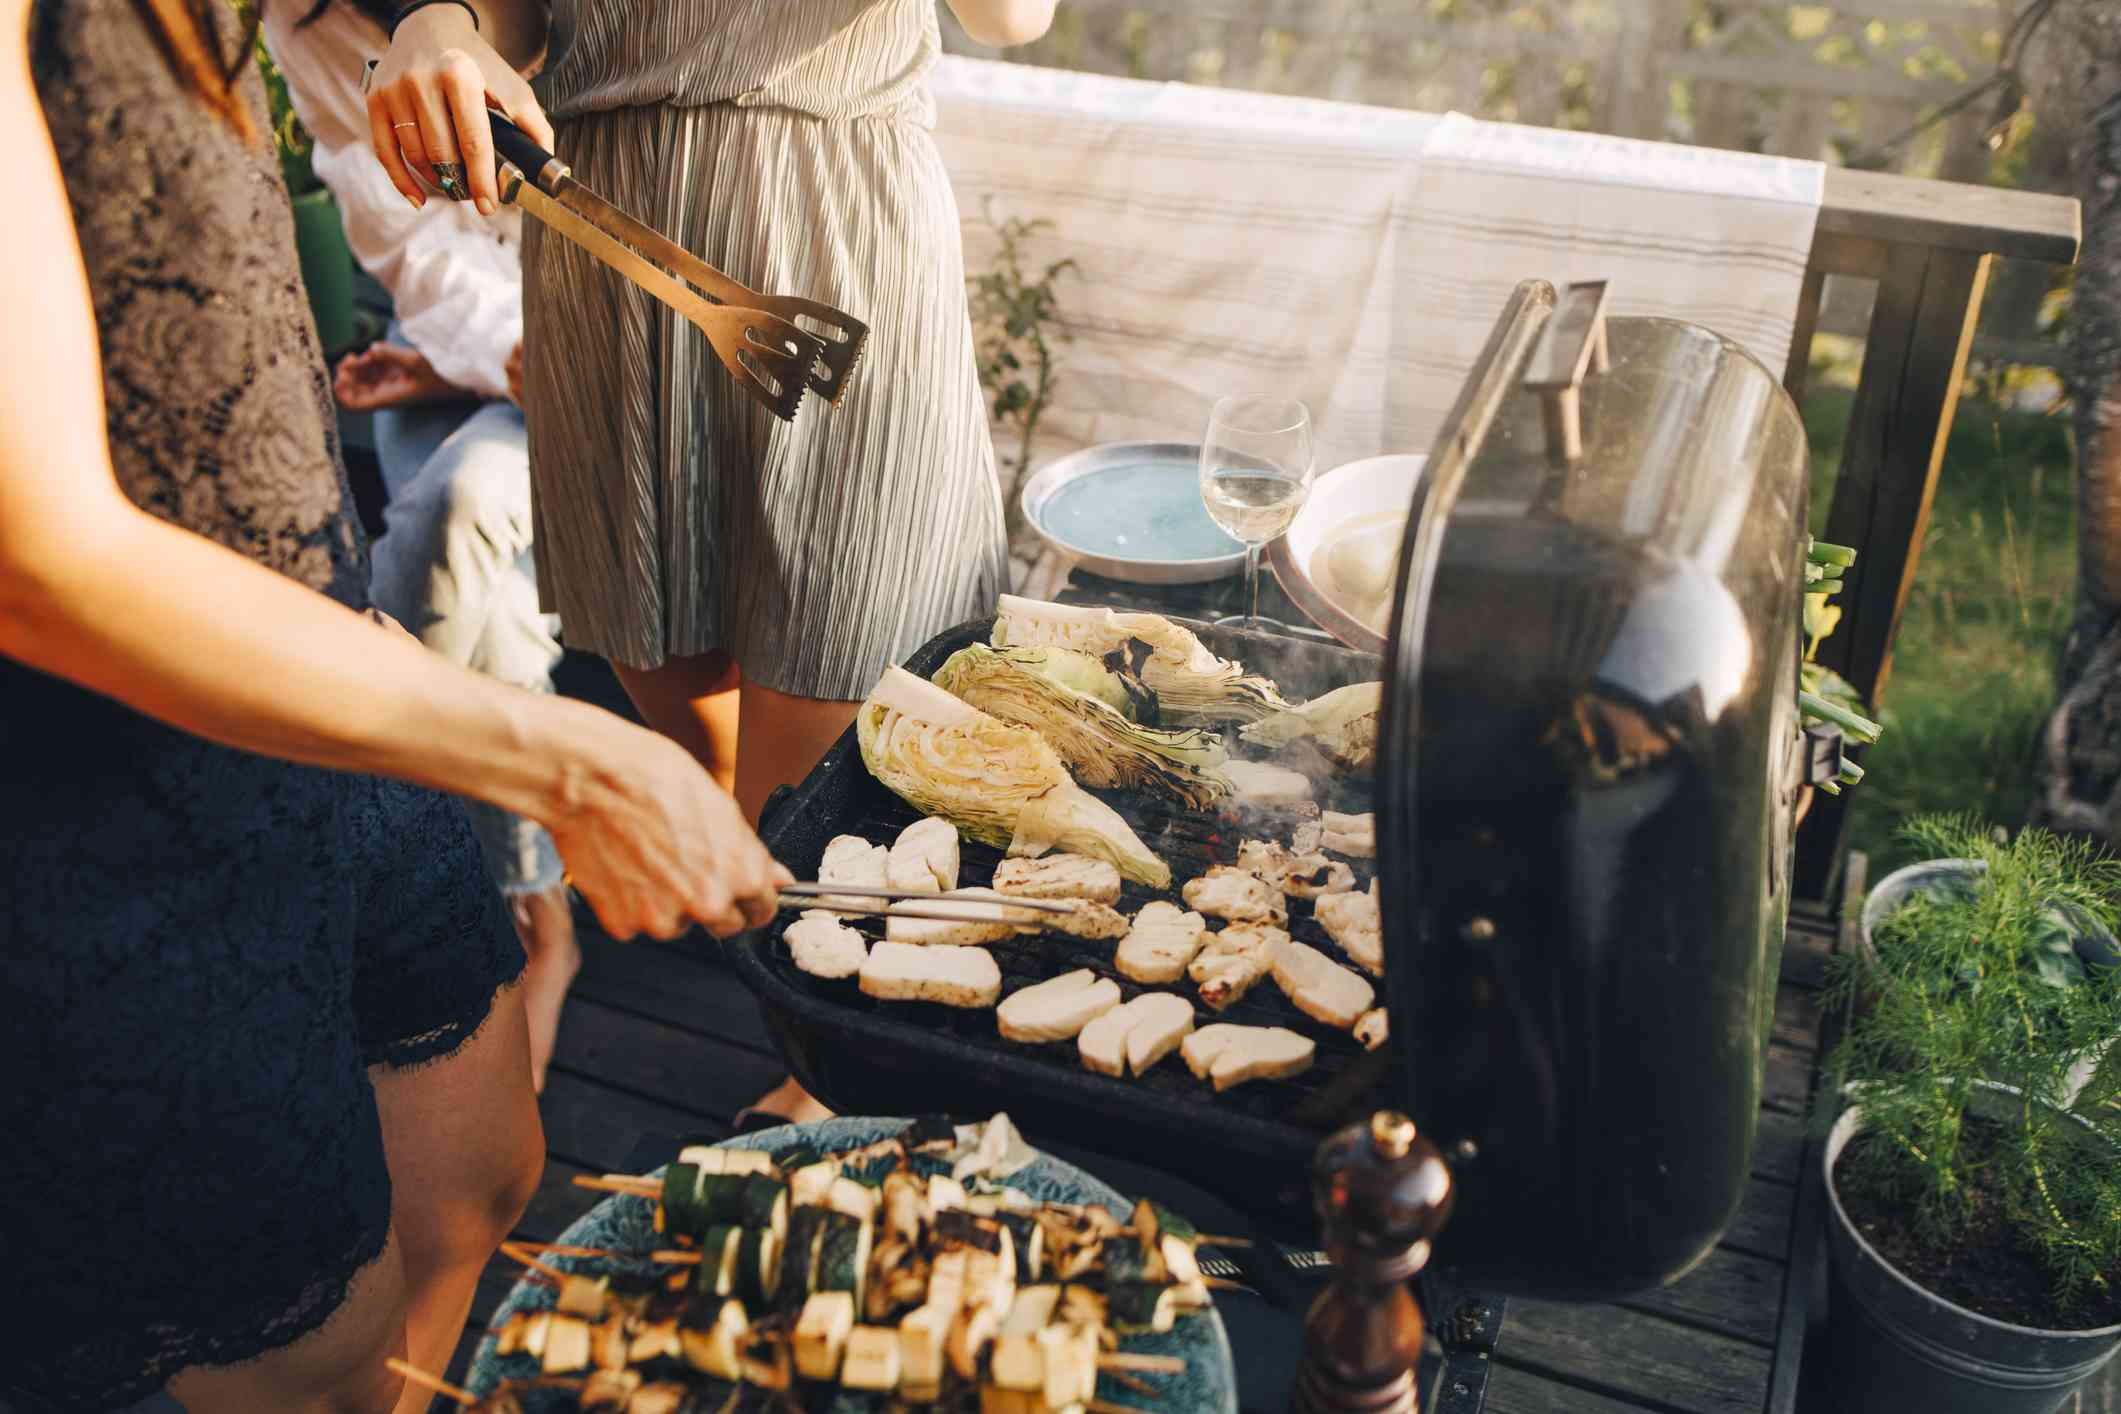 Midsection of female friends grilling food on barbecue grill